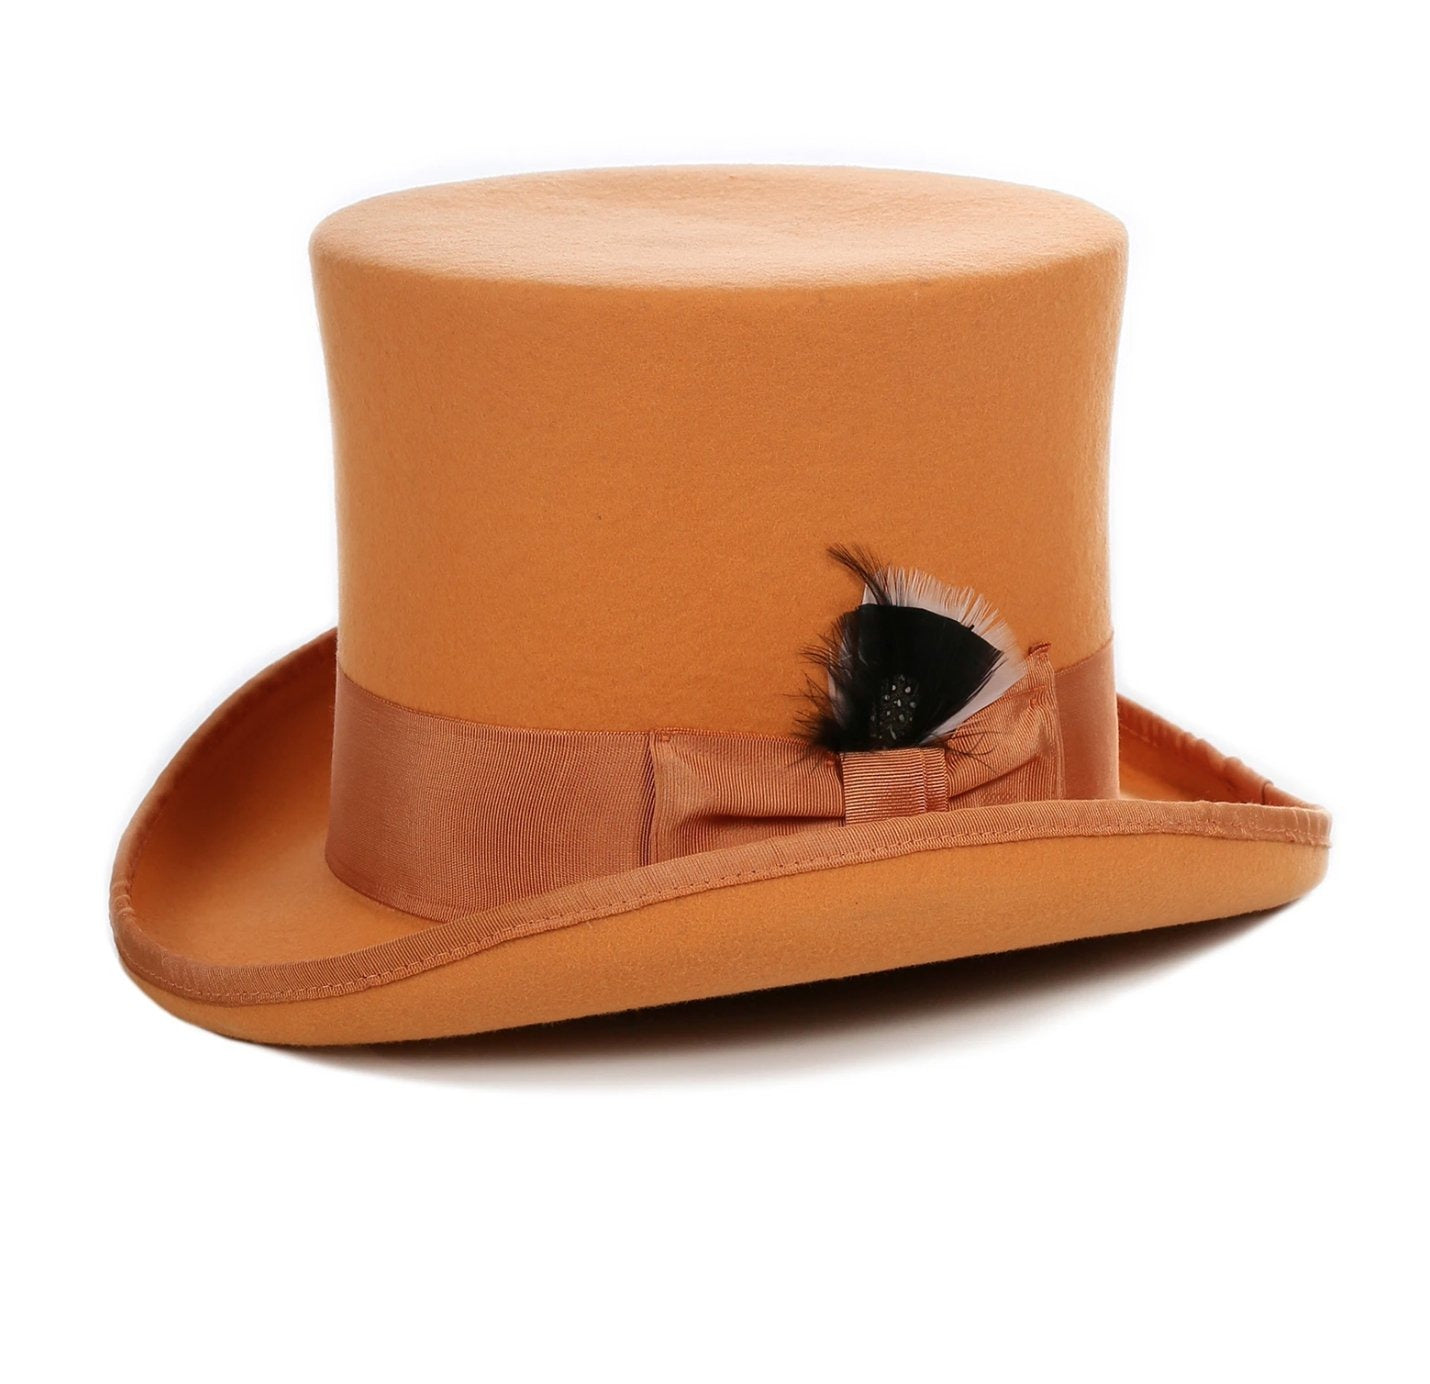 Mens Dress Tophat in Orange